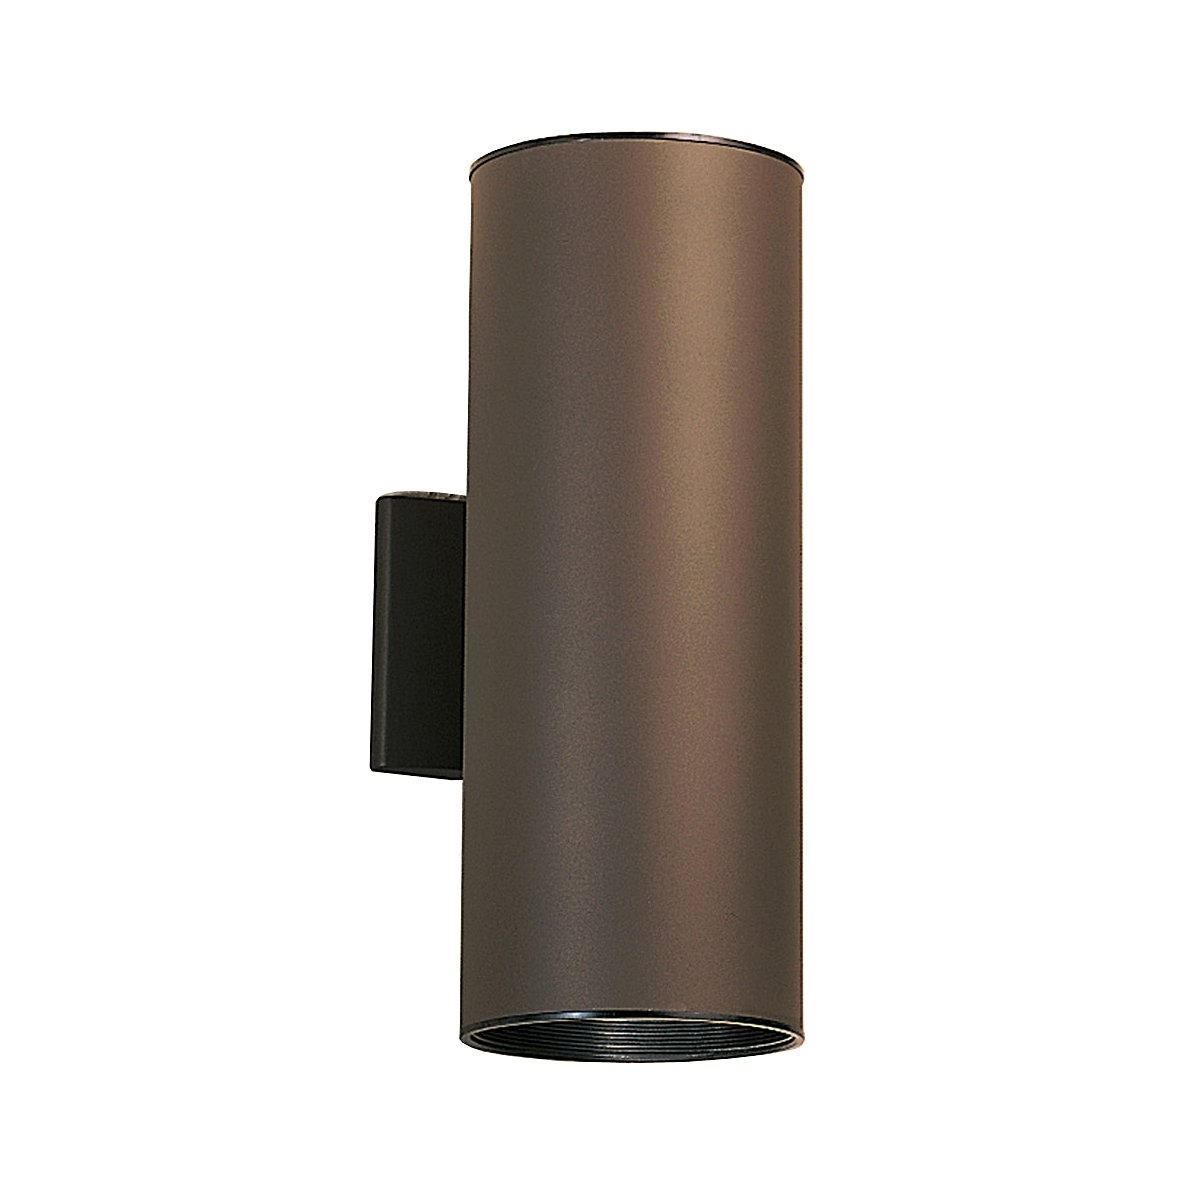 Light : Wooden Commercial Exterior Wall Lights Brown Simple Stunning For 2019 Commercial Outdoor Wall Lighting (View 3 of 20)